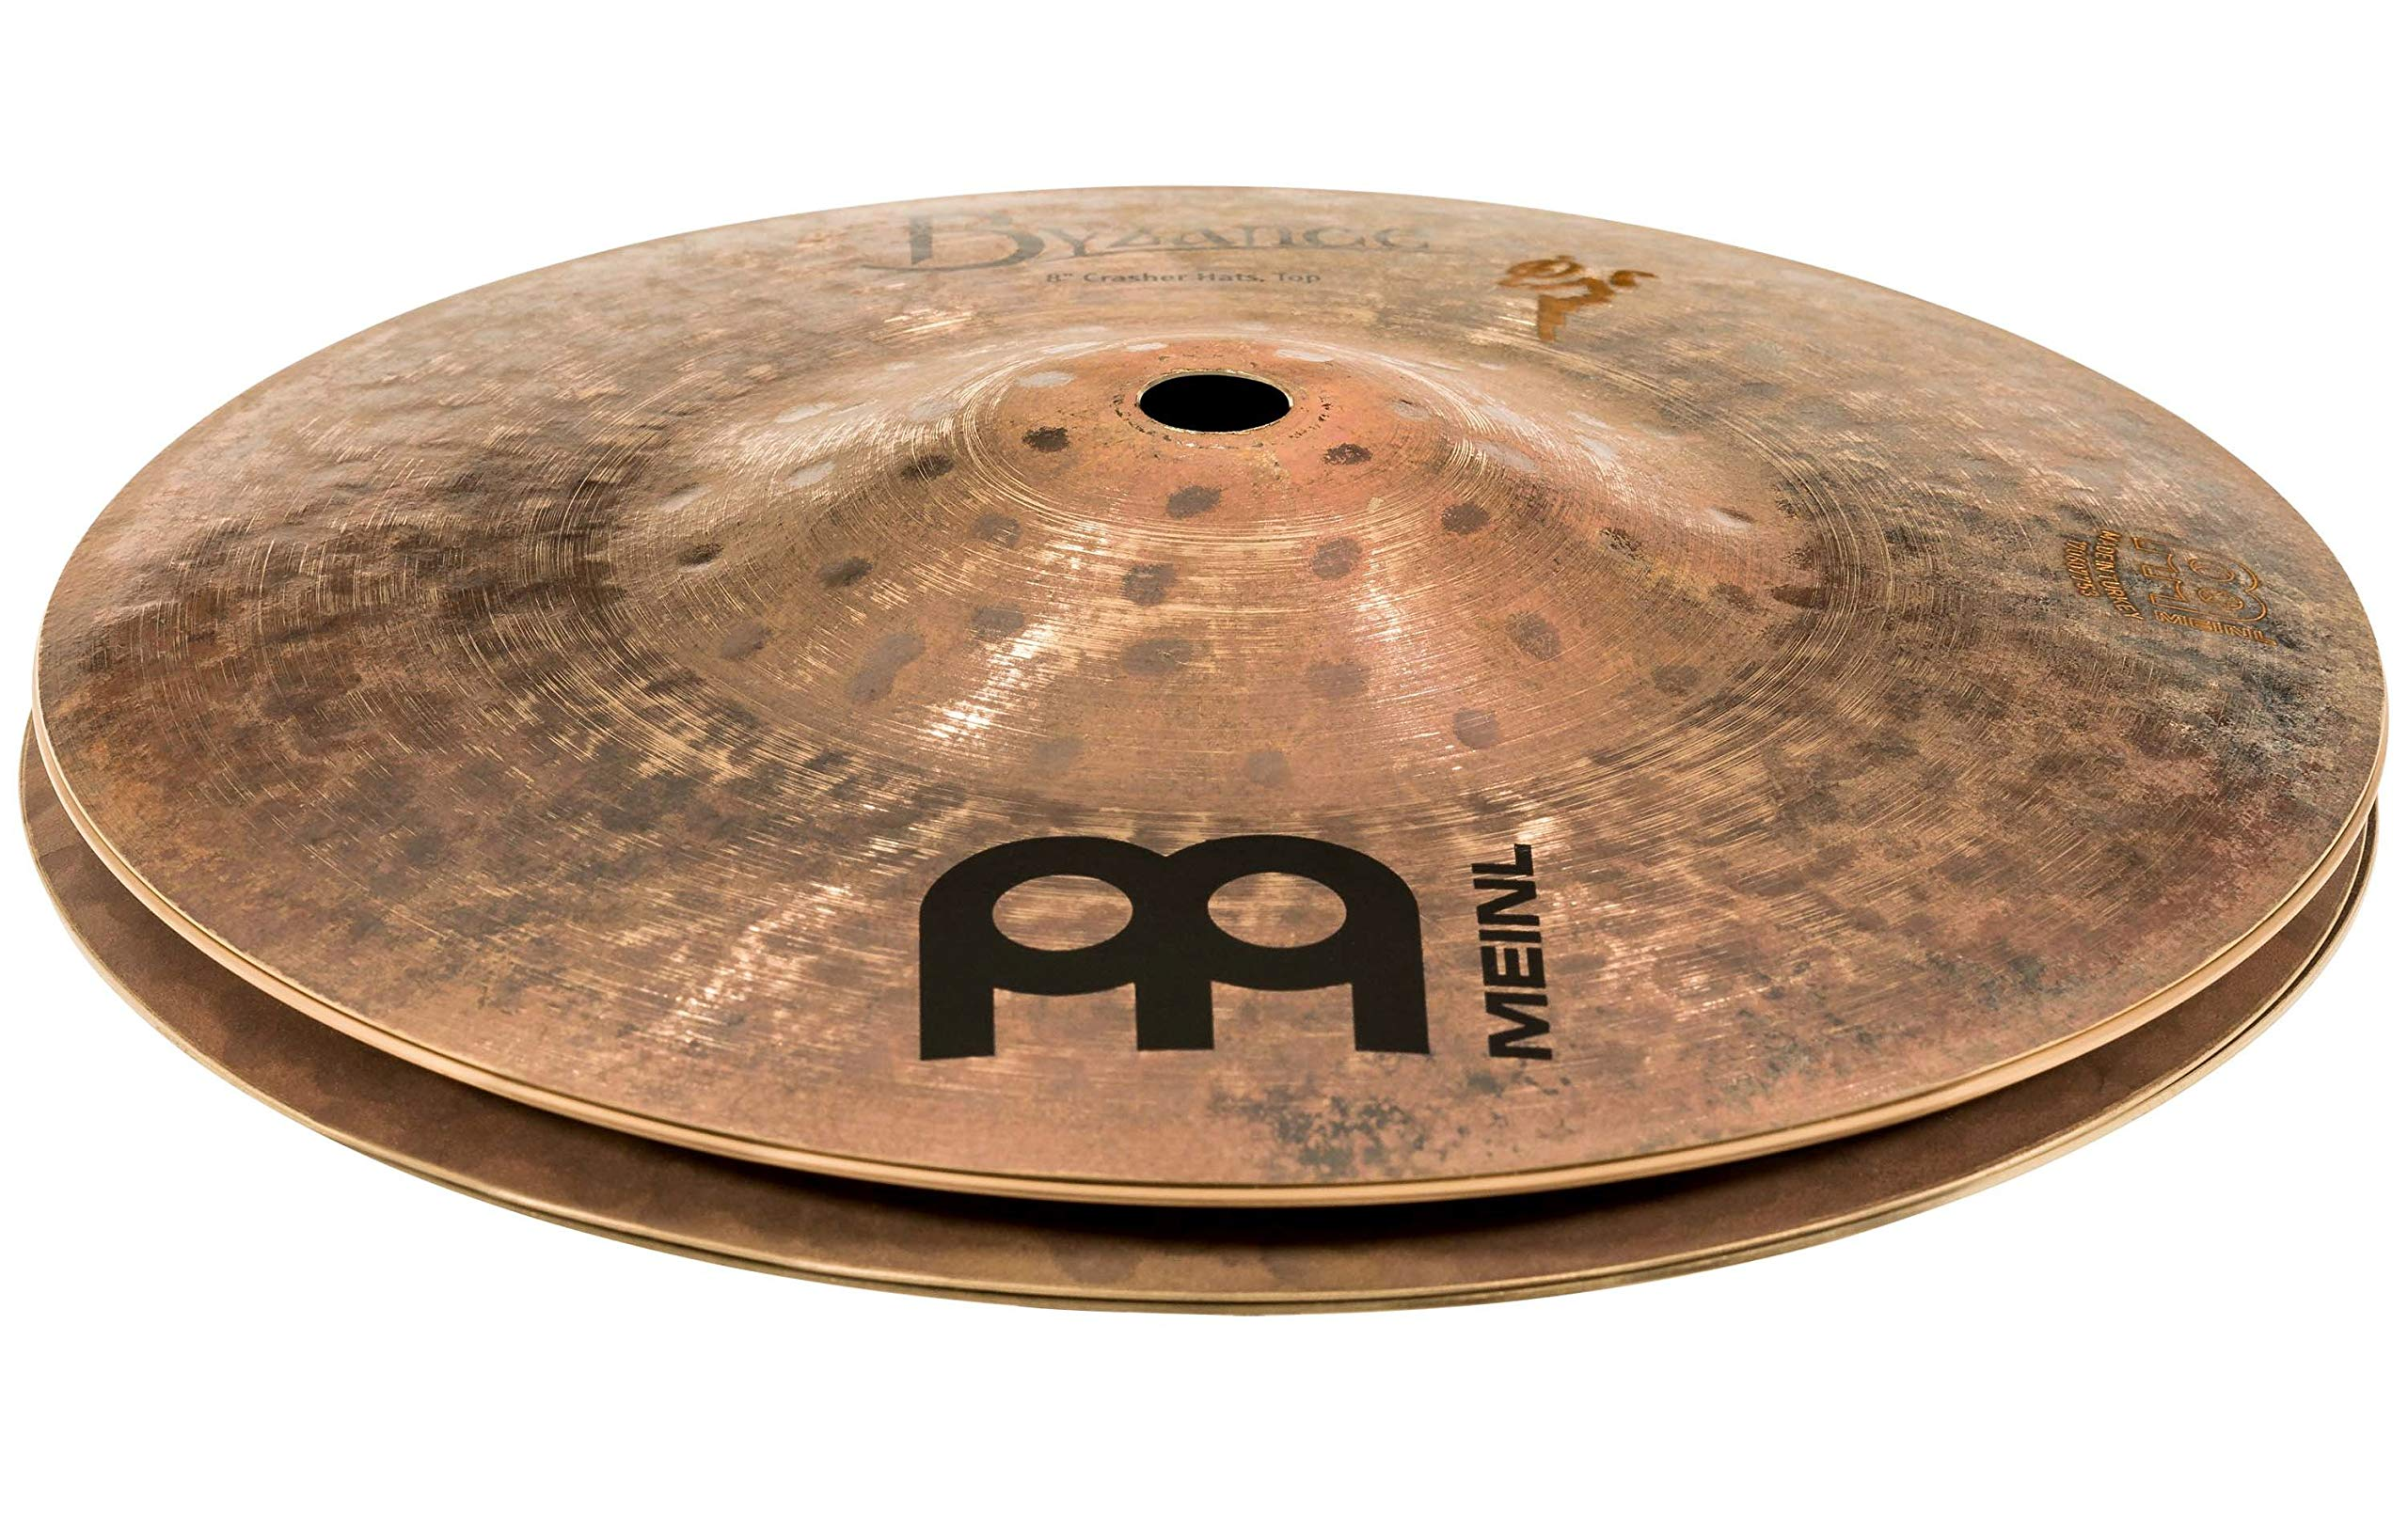 Meinl Cymbals Artist Concept Model - Benny Greb Crasher Hi-Hat Cymbal - 8 Inch by Meinl Cymbals